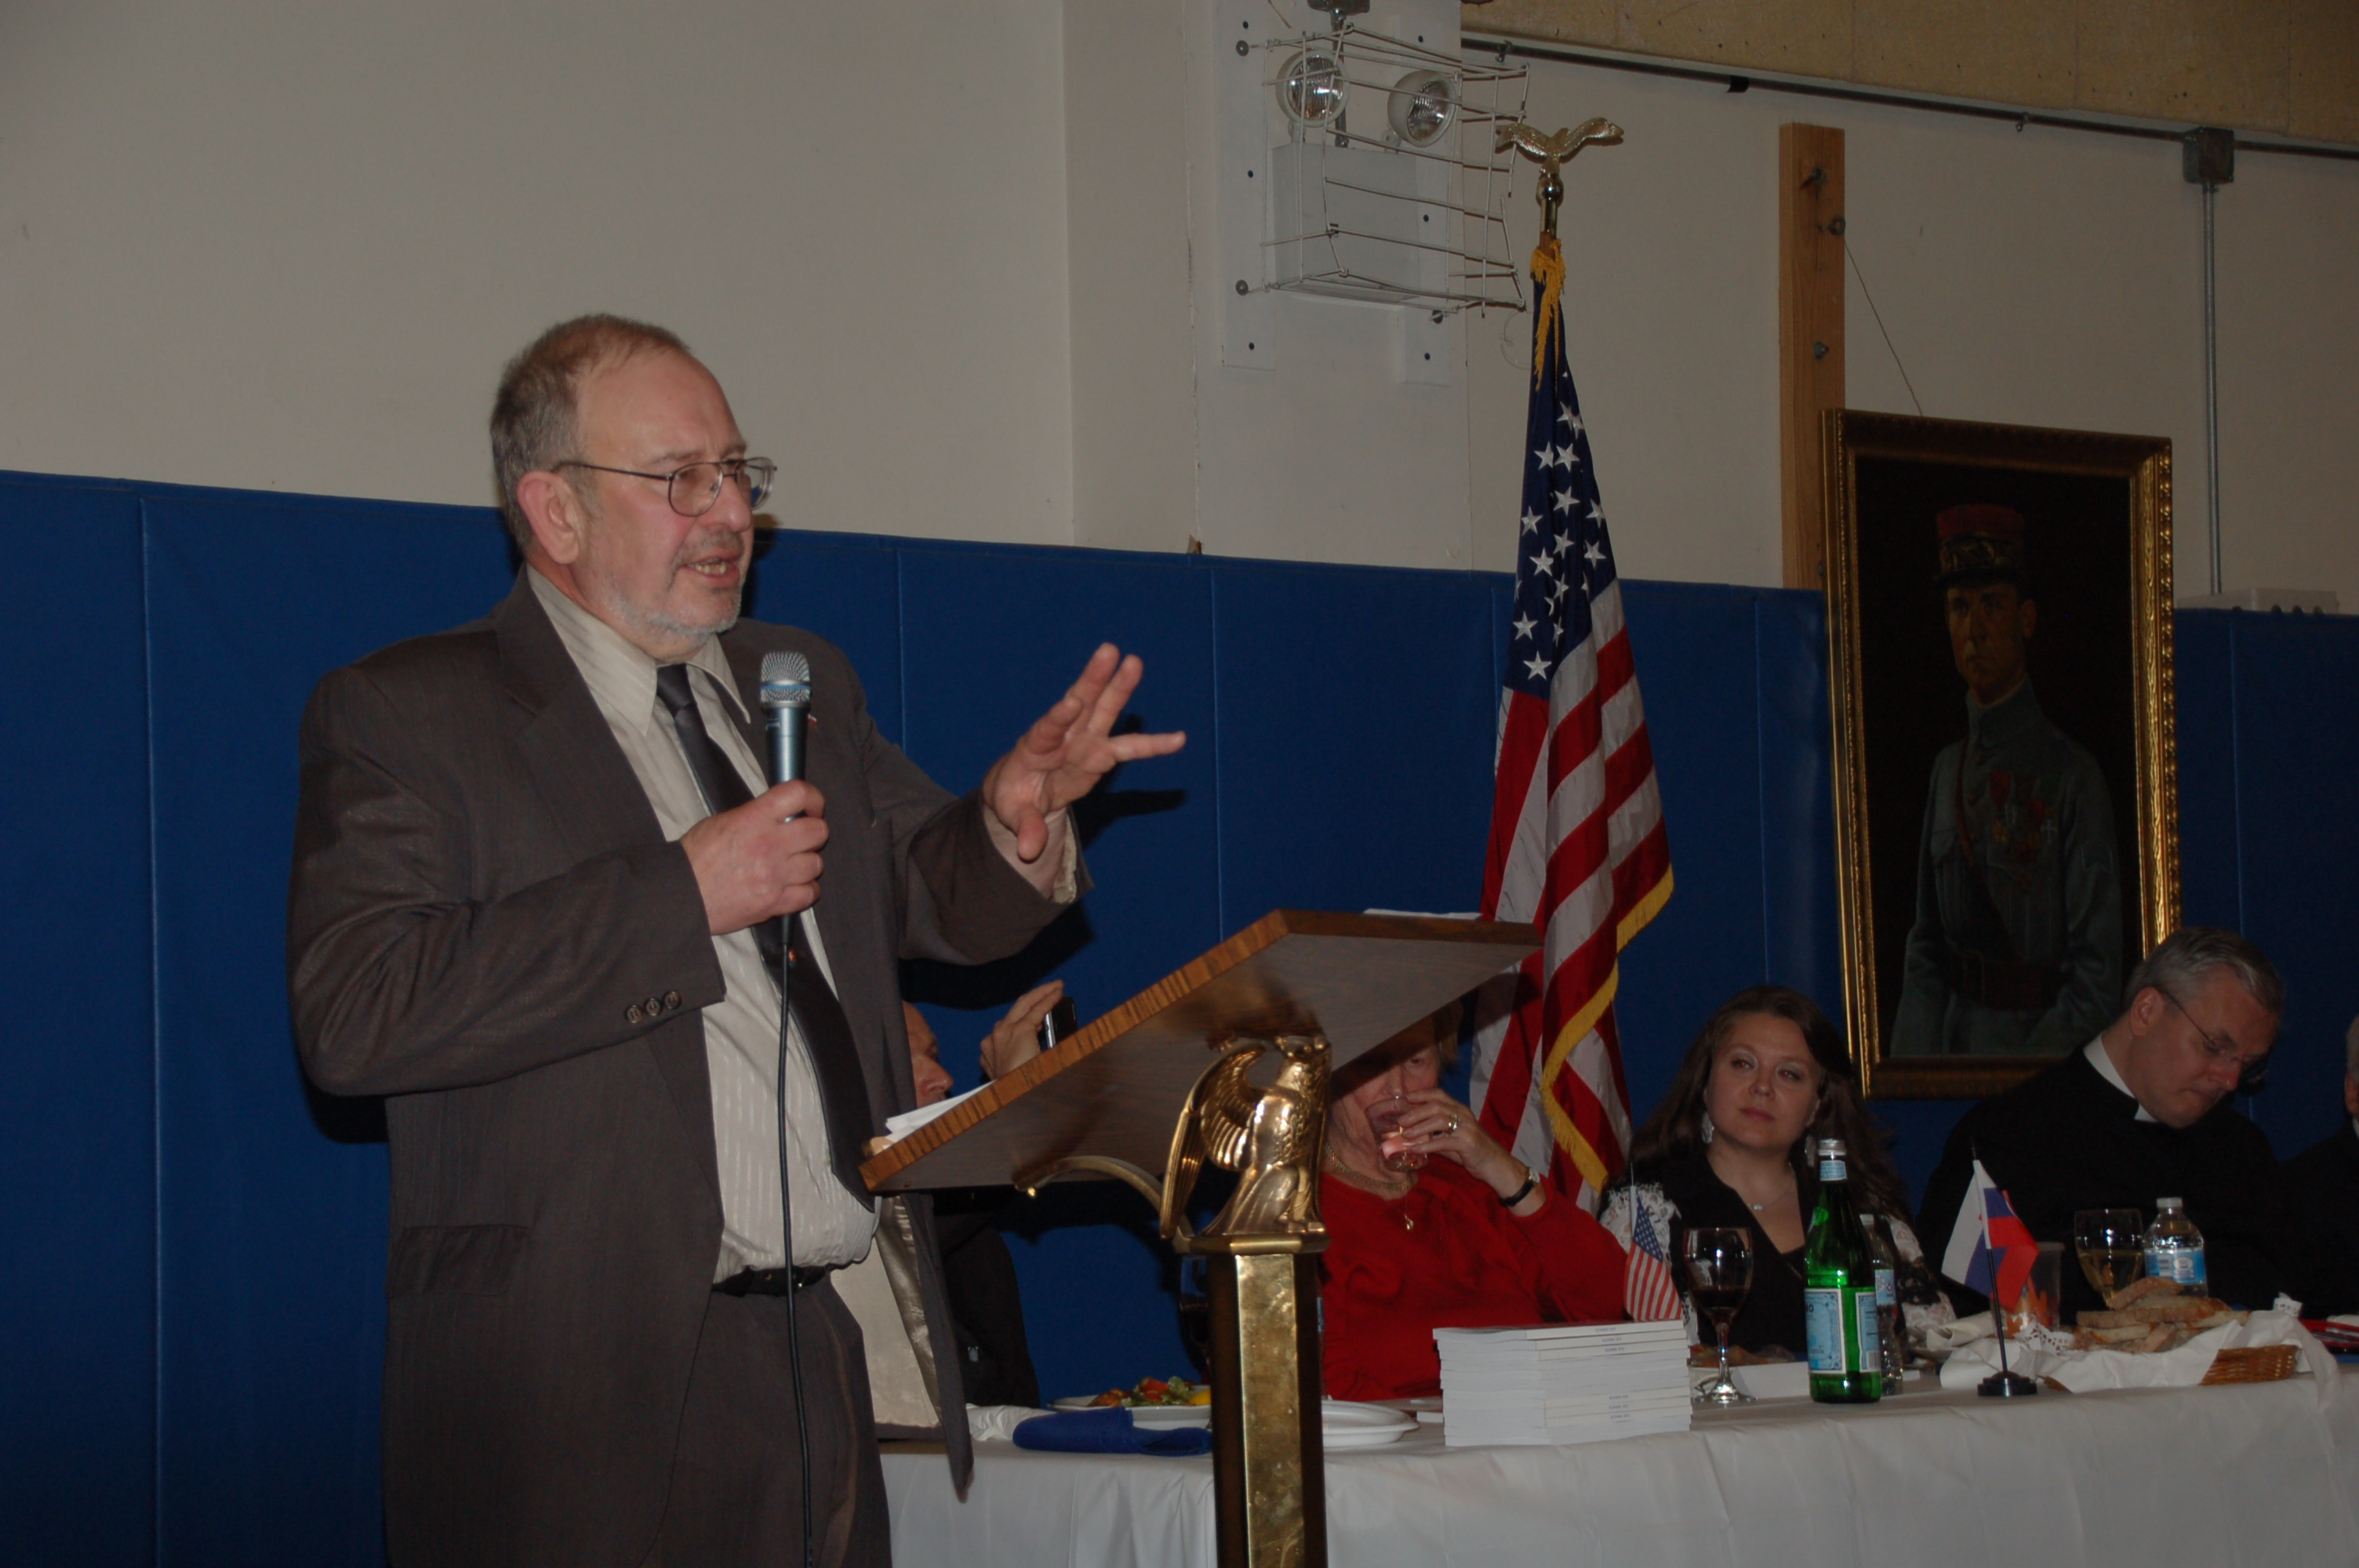 DSC_855_Stefanik 100th anniversary of death_Michael Kopanic keynote speech_May19 2019 - Michael Kopanic